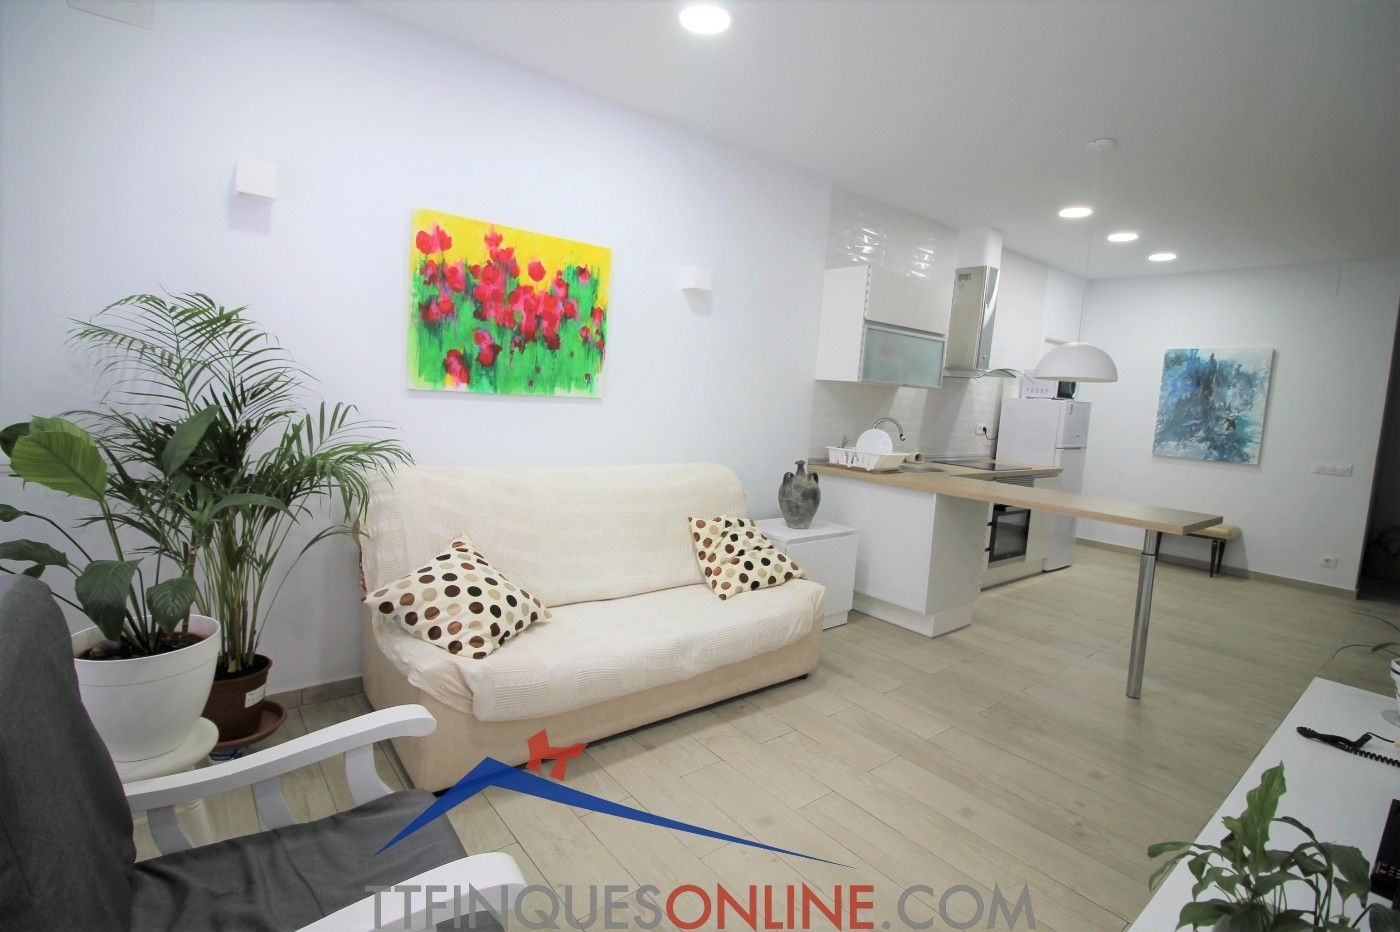 Ground floor in Carrer magallanes, 35. Piso + local